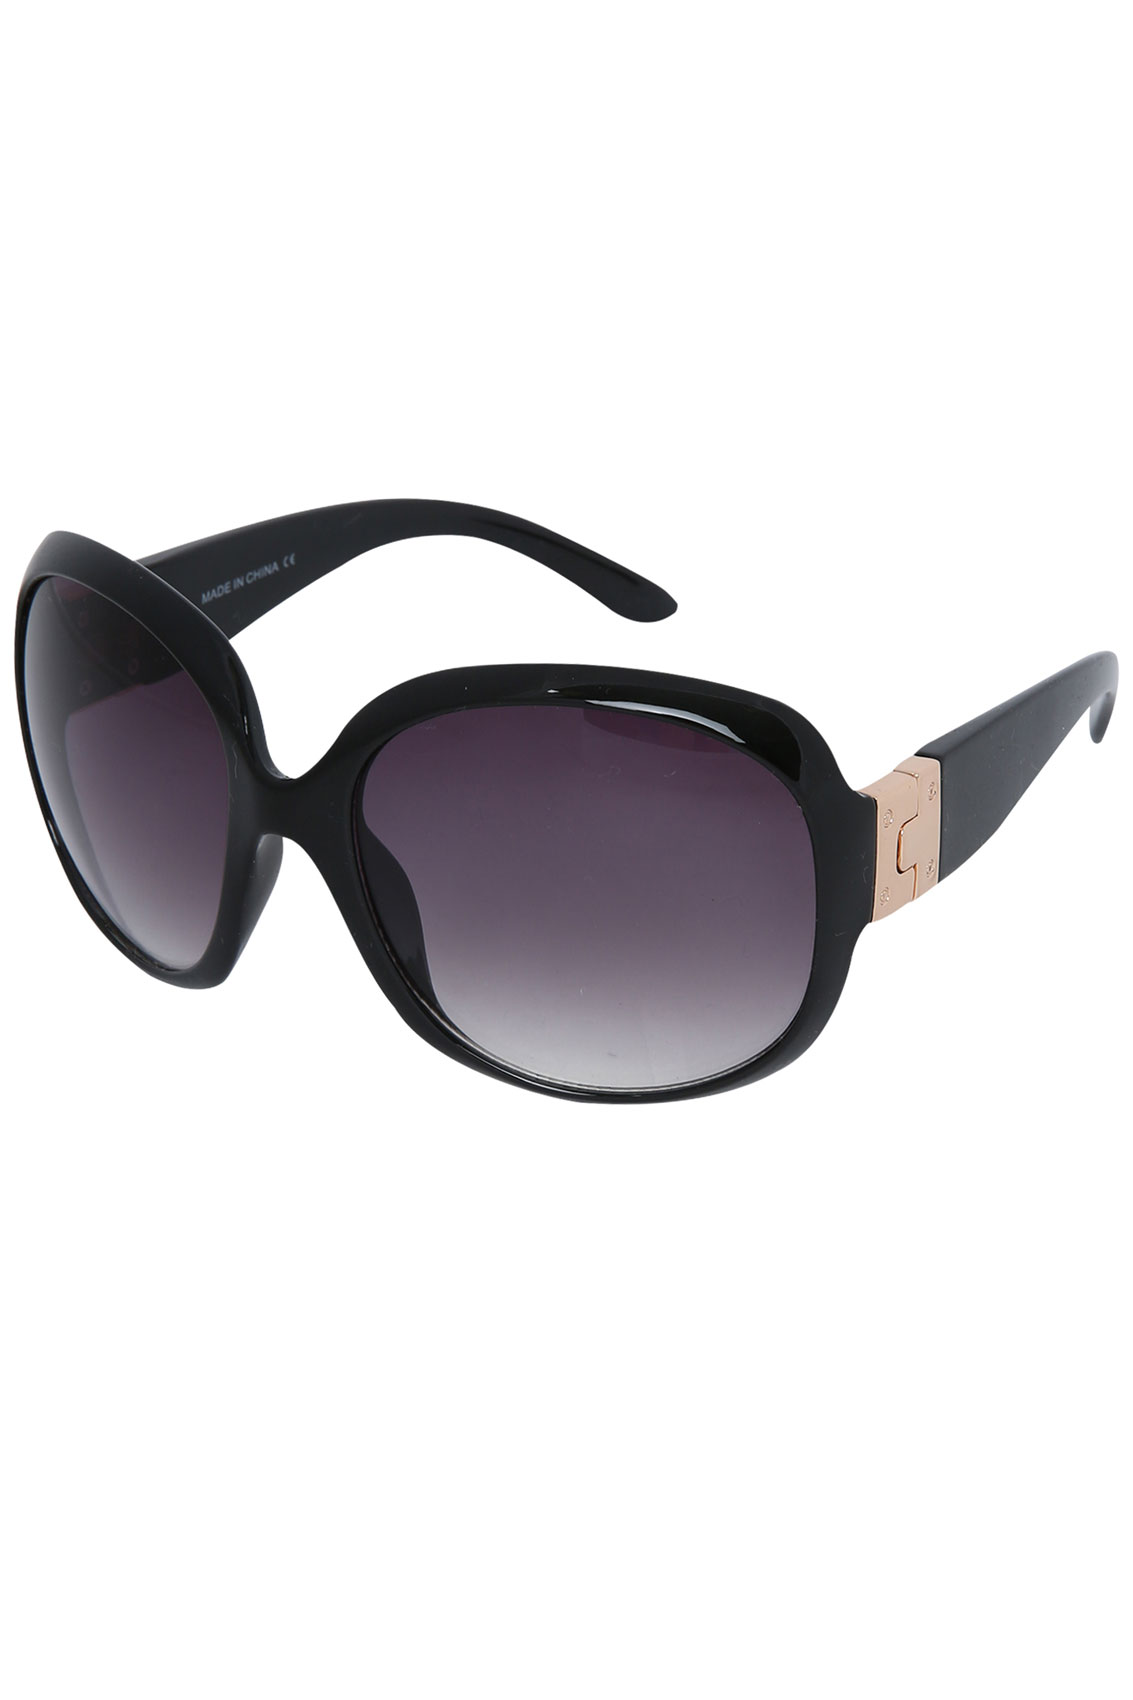 Black Frame Sunglasses With Gold Metal Hinge